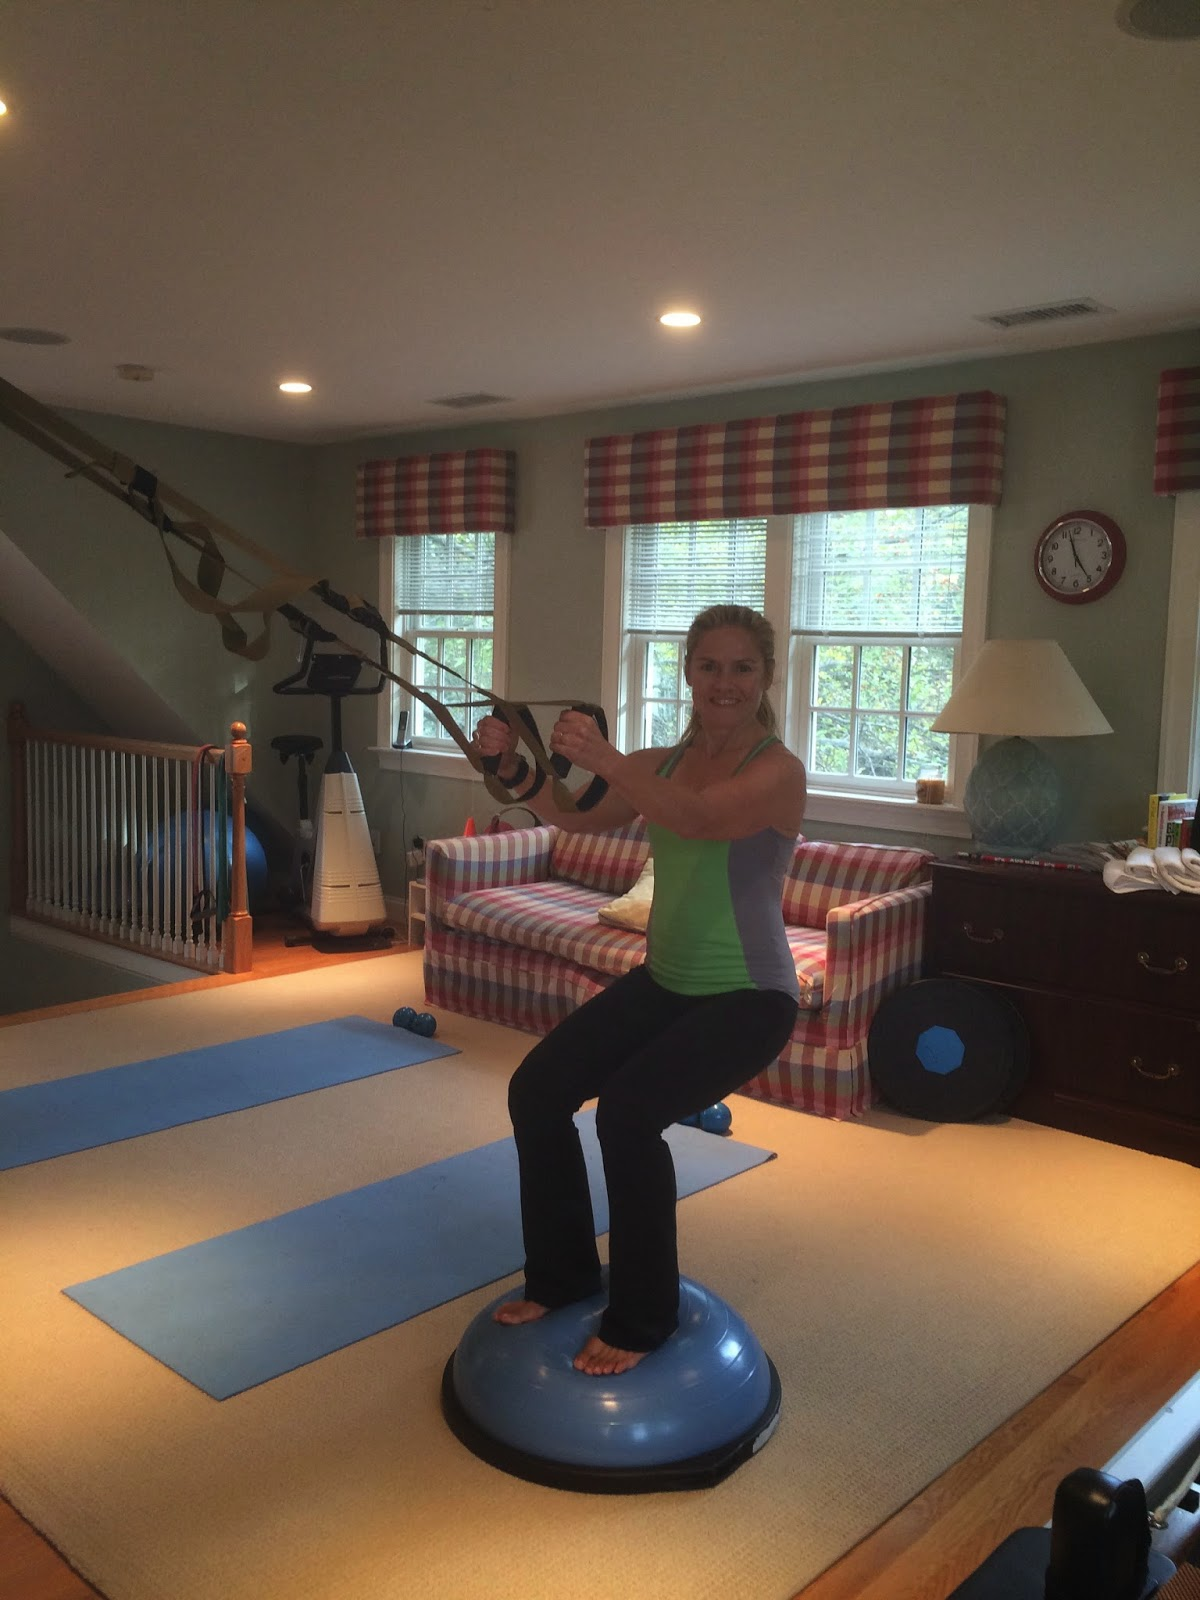 TRX on the Bosu=conditioning with CORE stability